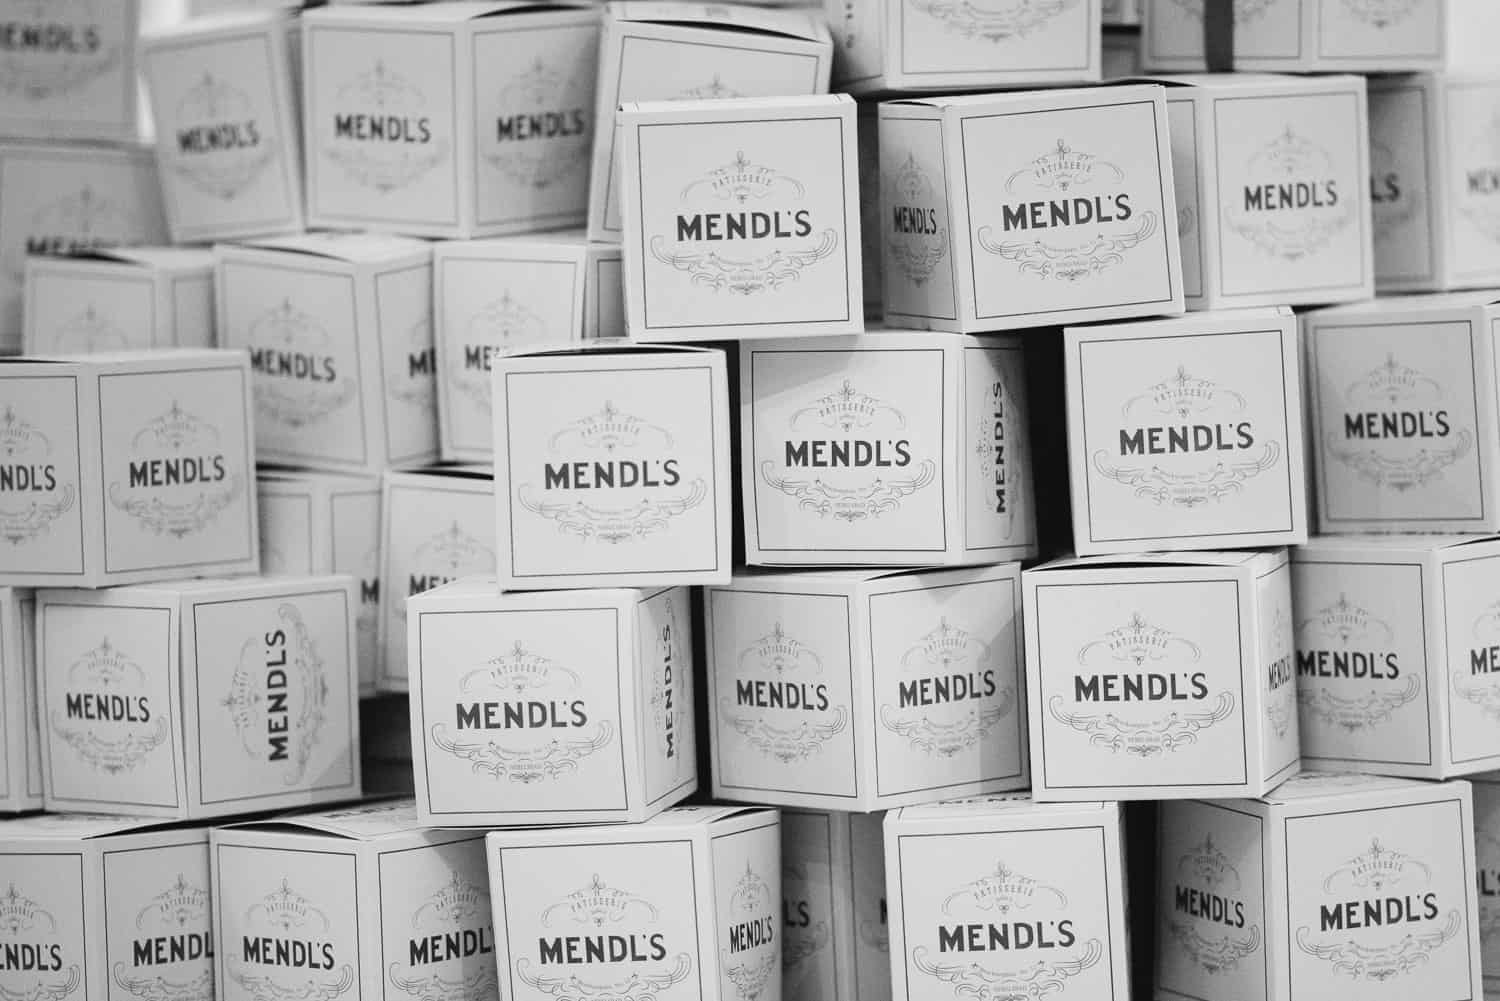 Mendl's bakery boxes at UGC hotel